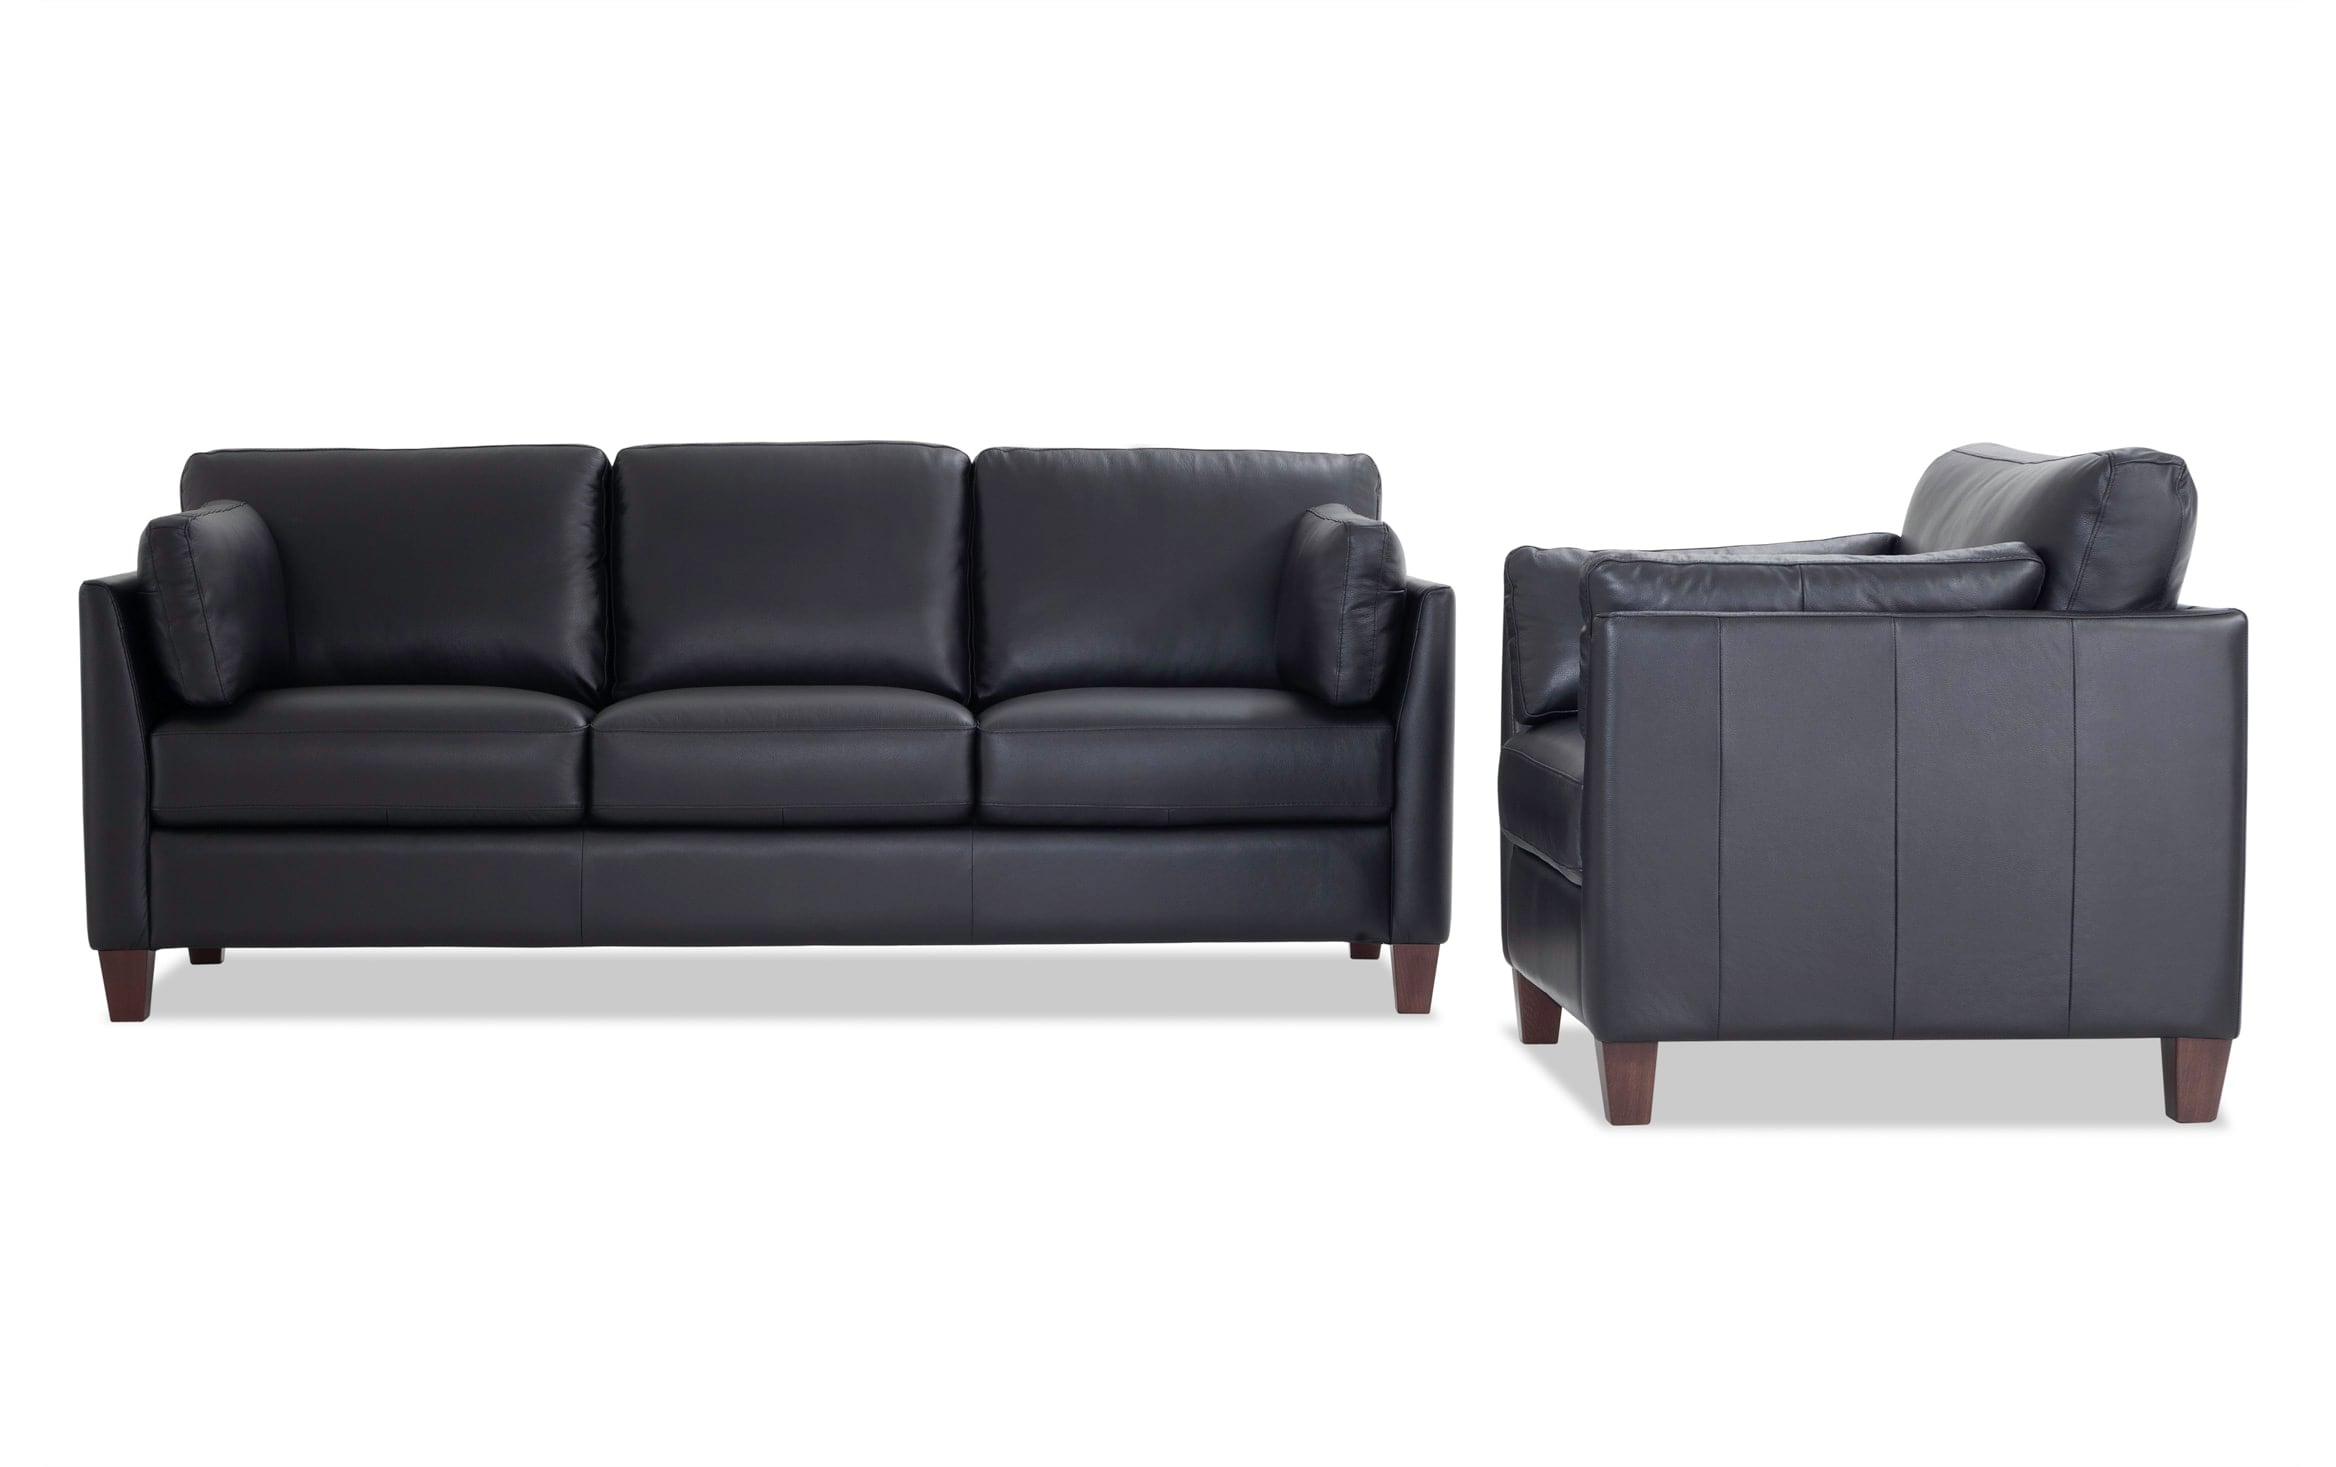 - Antonio Black Leather Sofa & Chair Bobs.com